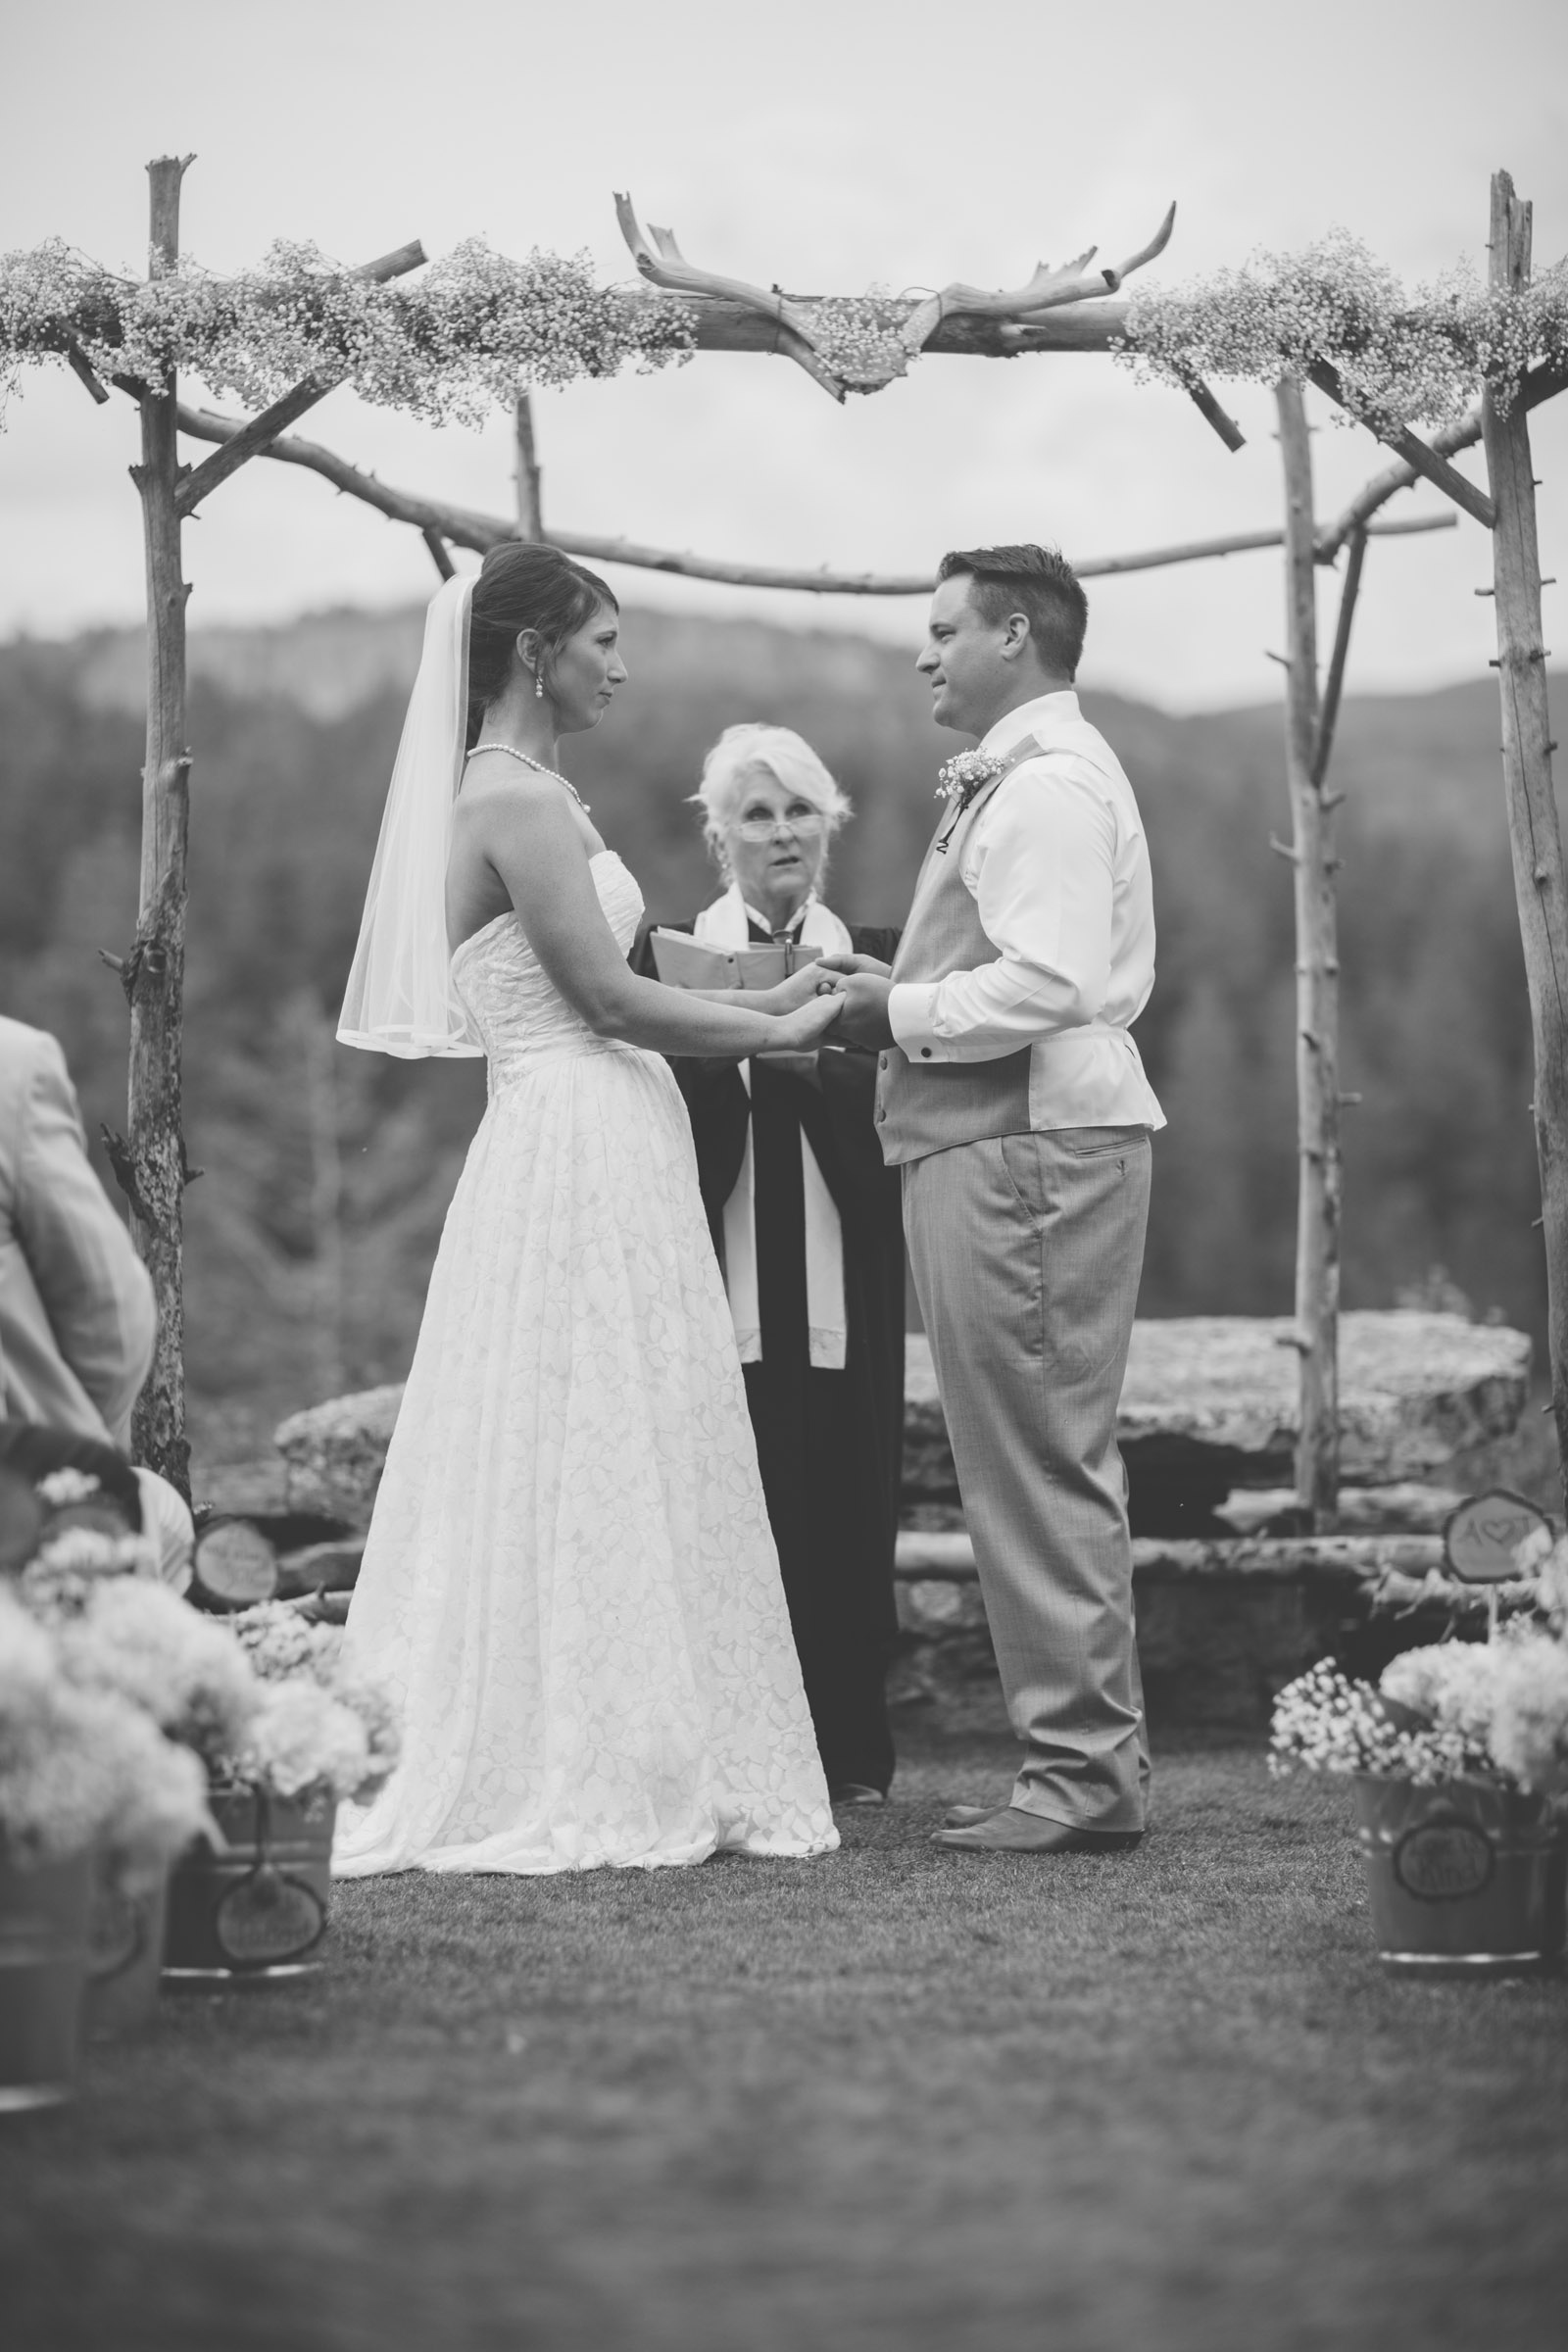 134-wedding-ideas-ideas-wedding-forest-mason-jars-backdrop-colorado-mancos-ceremony